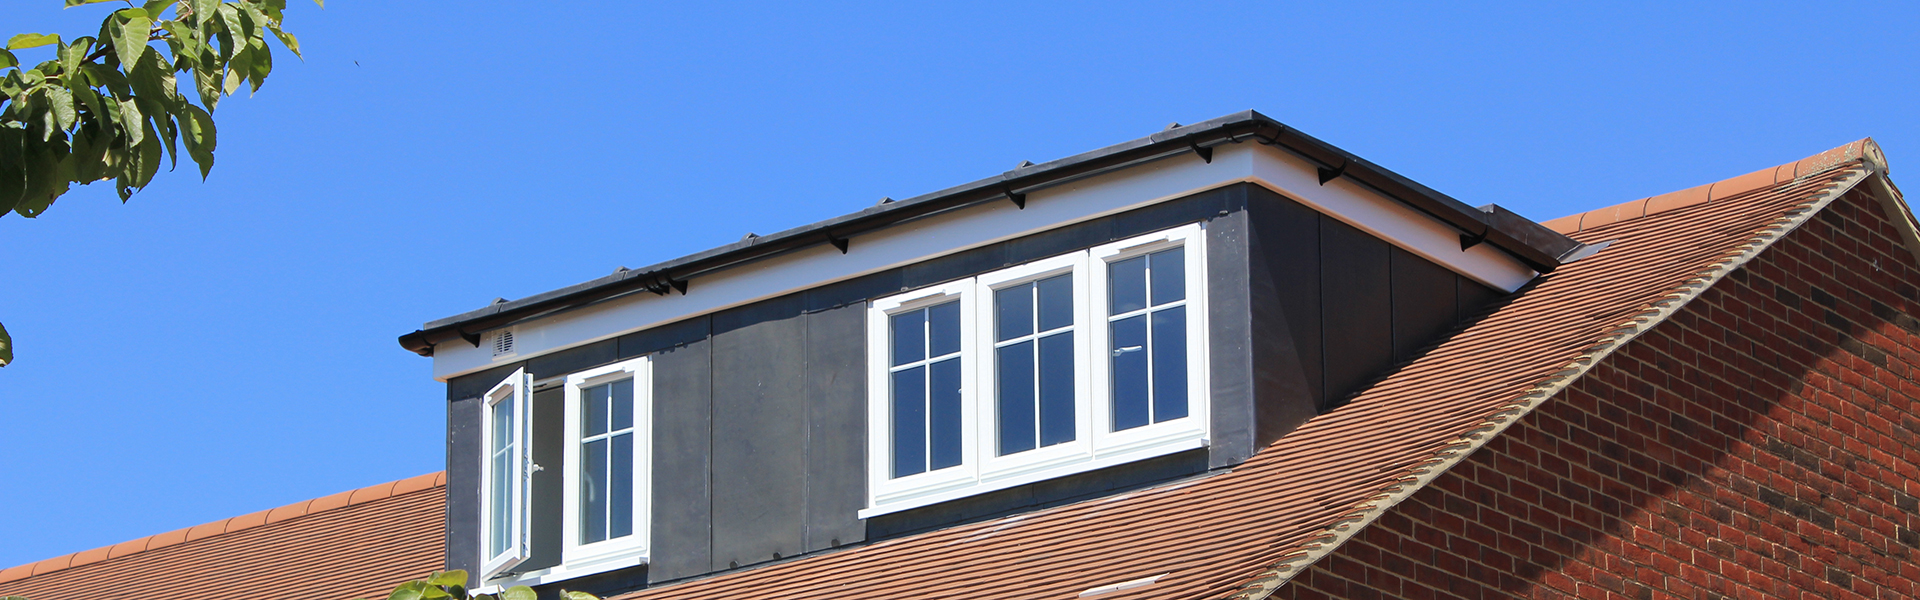 Loft Conversion Faqs Timescales Planning Permission